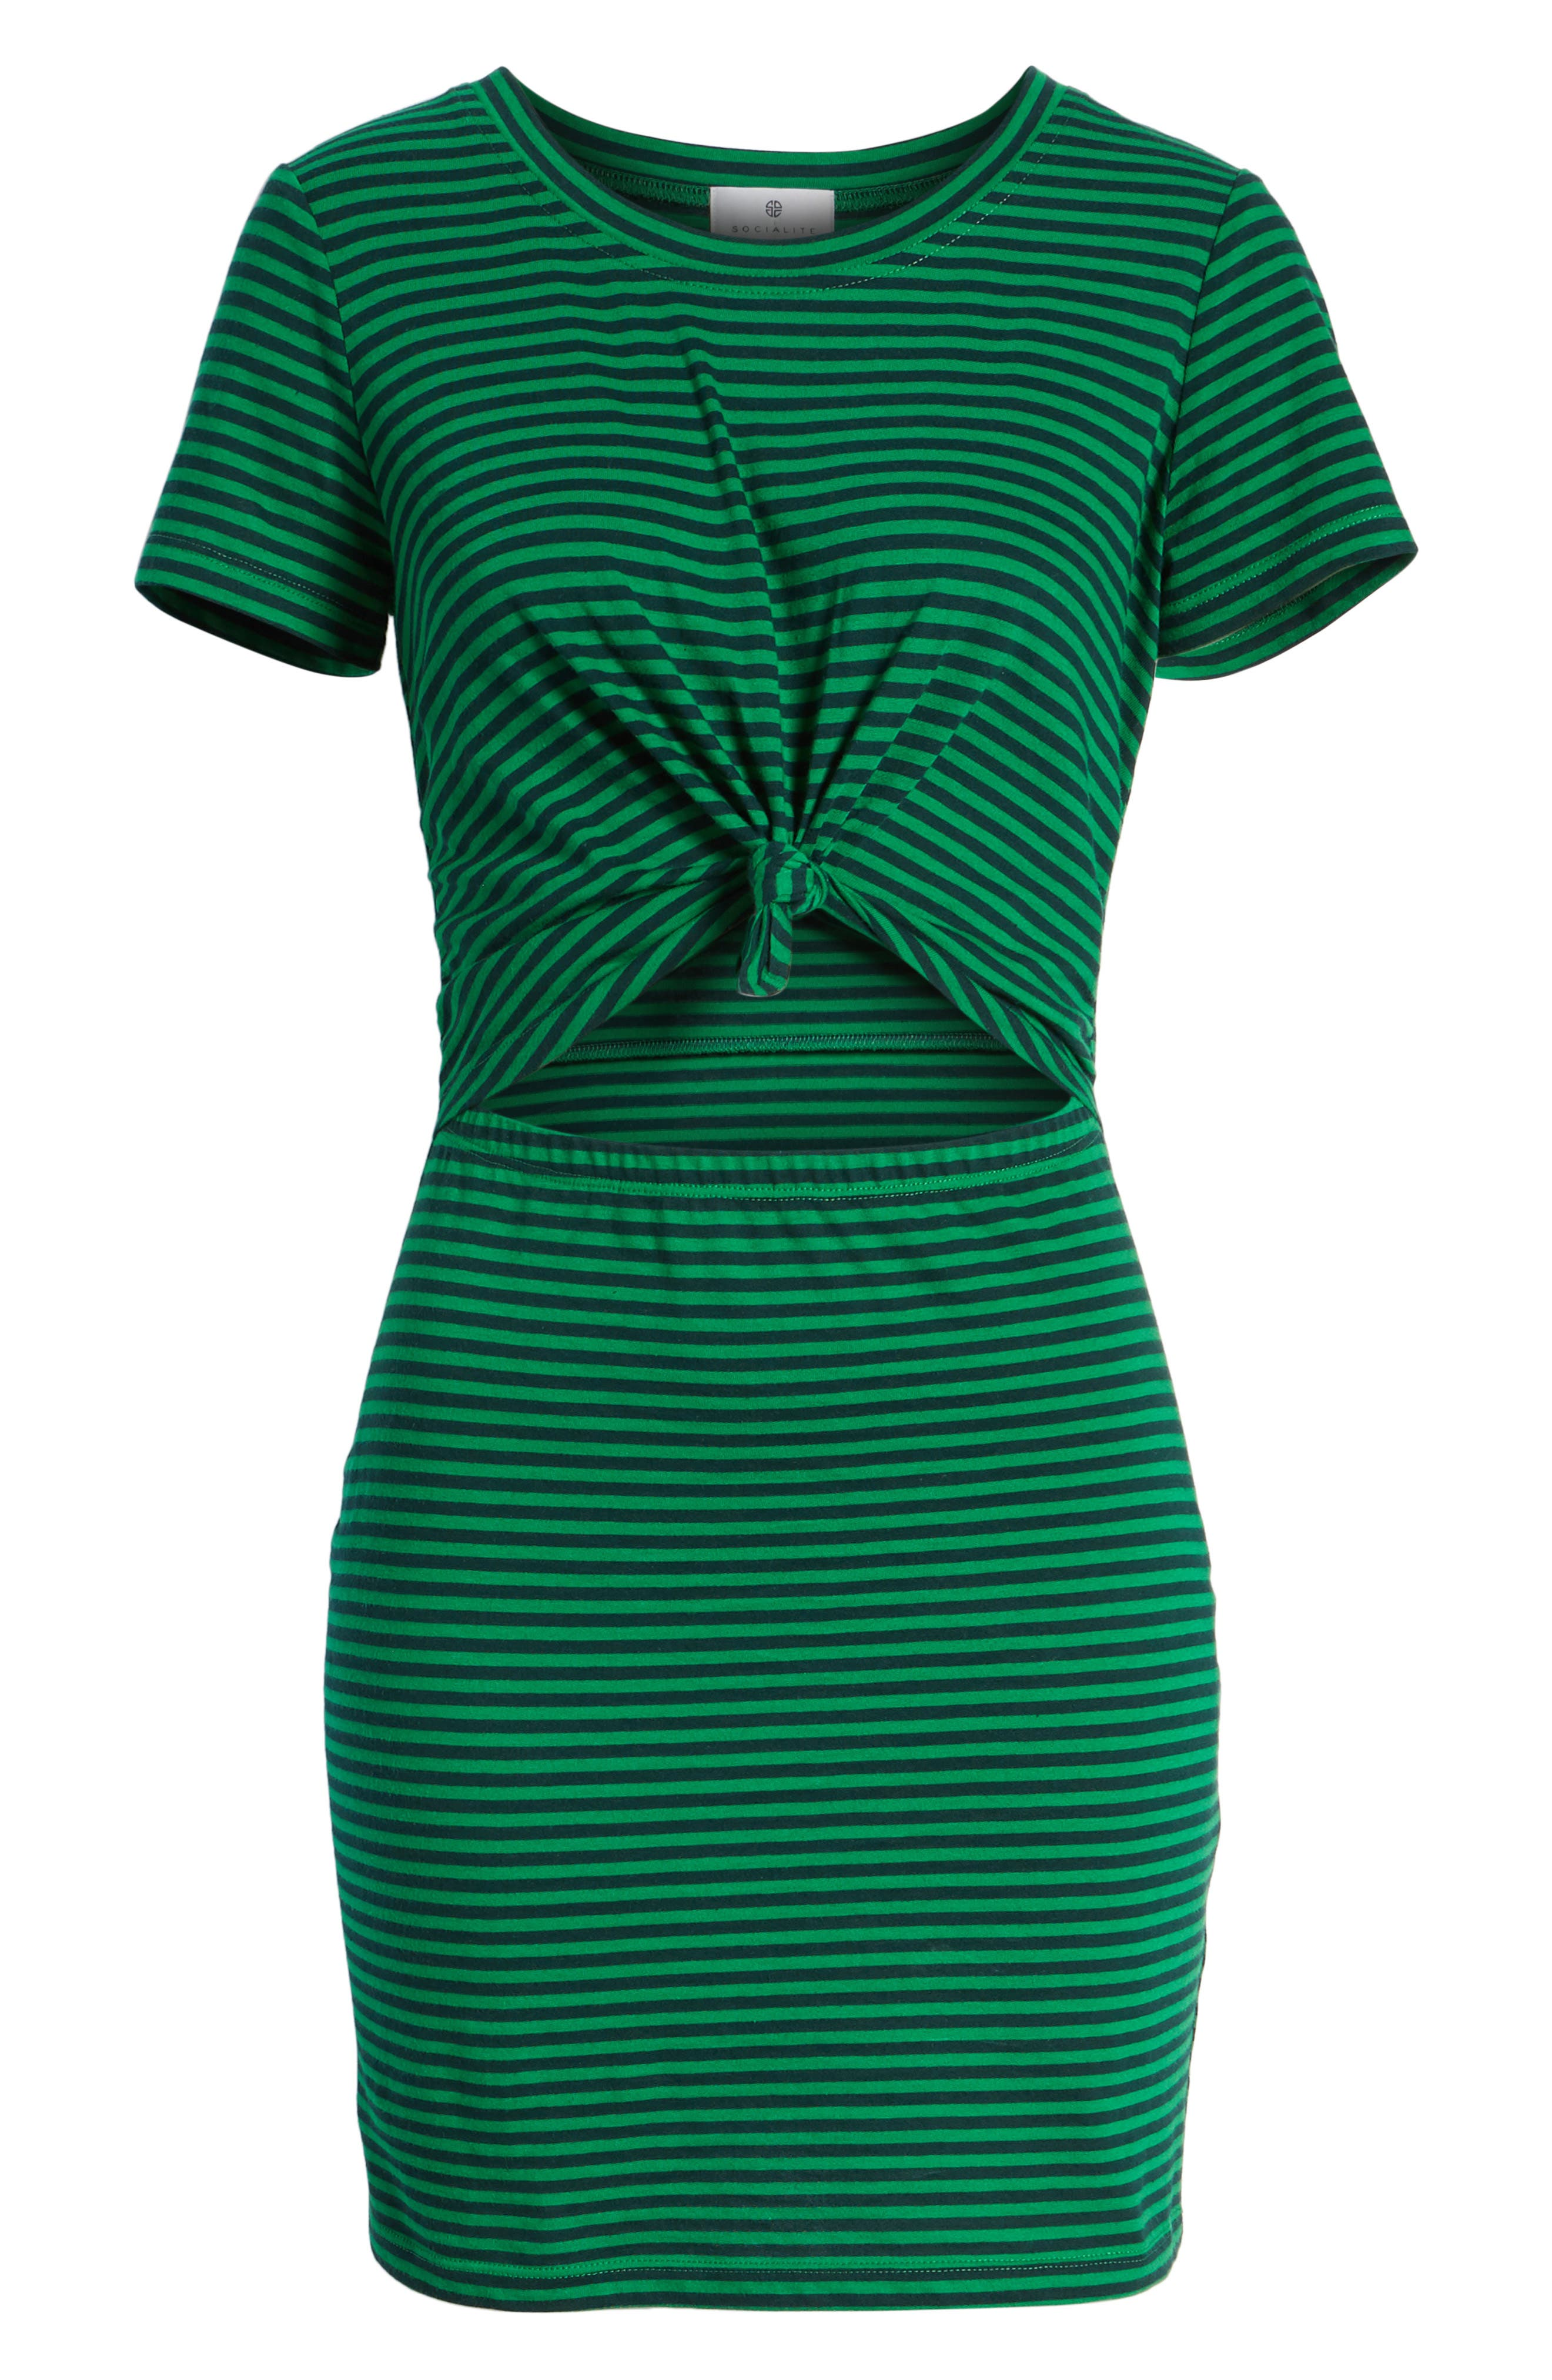 Knot Front Cutout Dress,                             Alternate thumbnail 7, color,                             EMERALD/ NAVY STRIPE